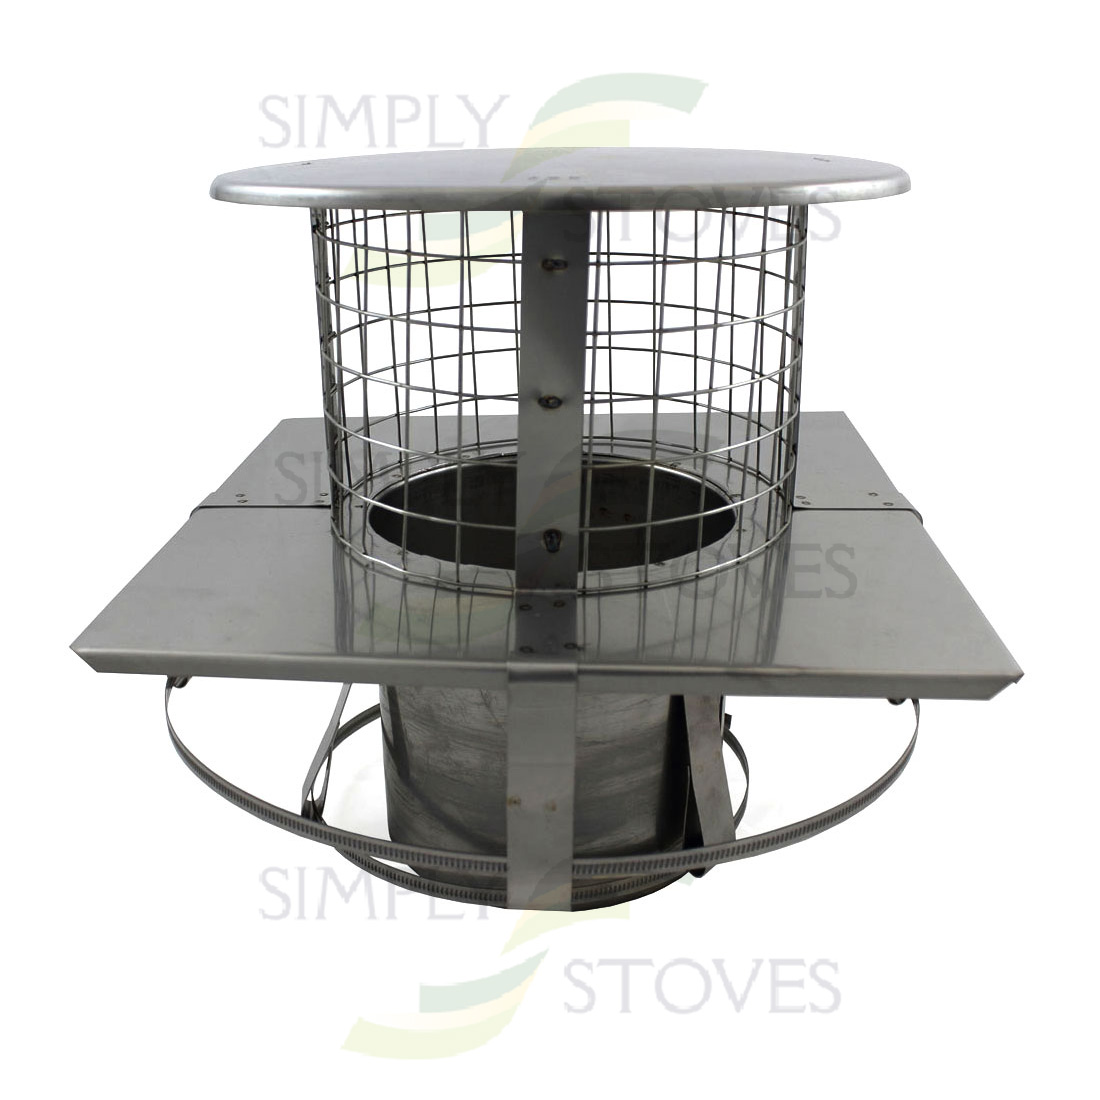 5 Quot 125mm Square Stainless Steel Suspending Pot Hanging